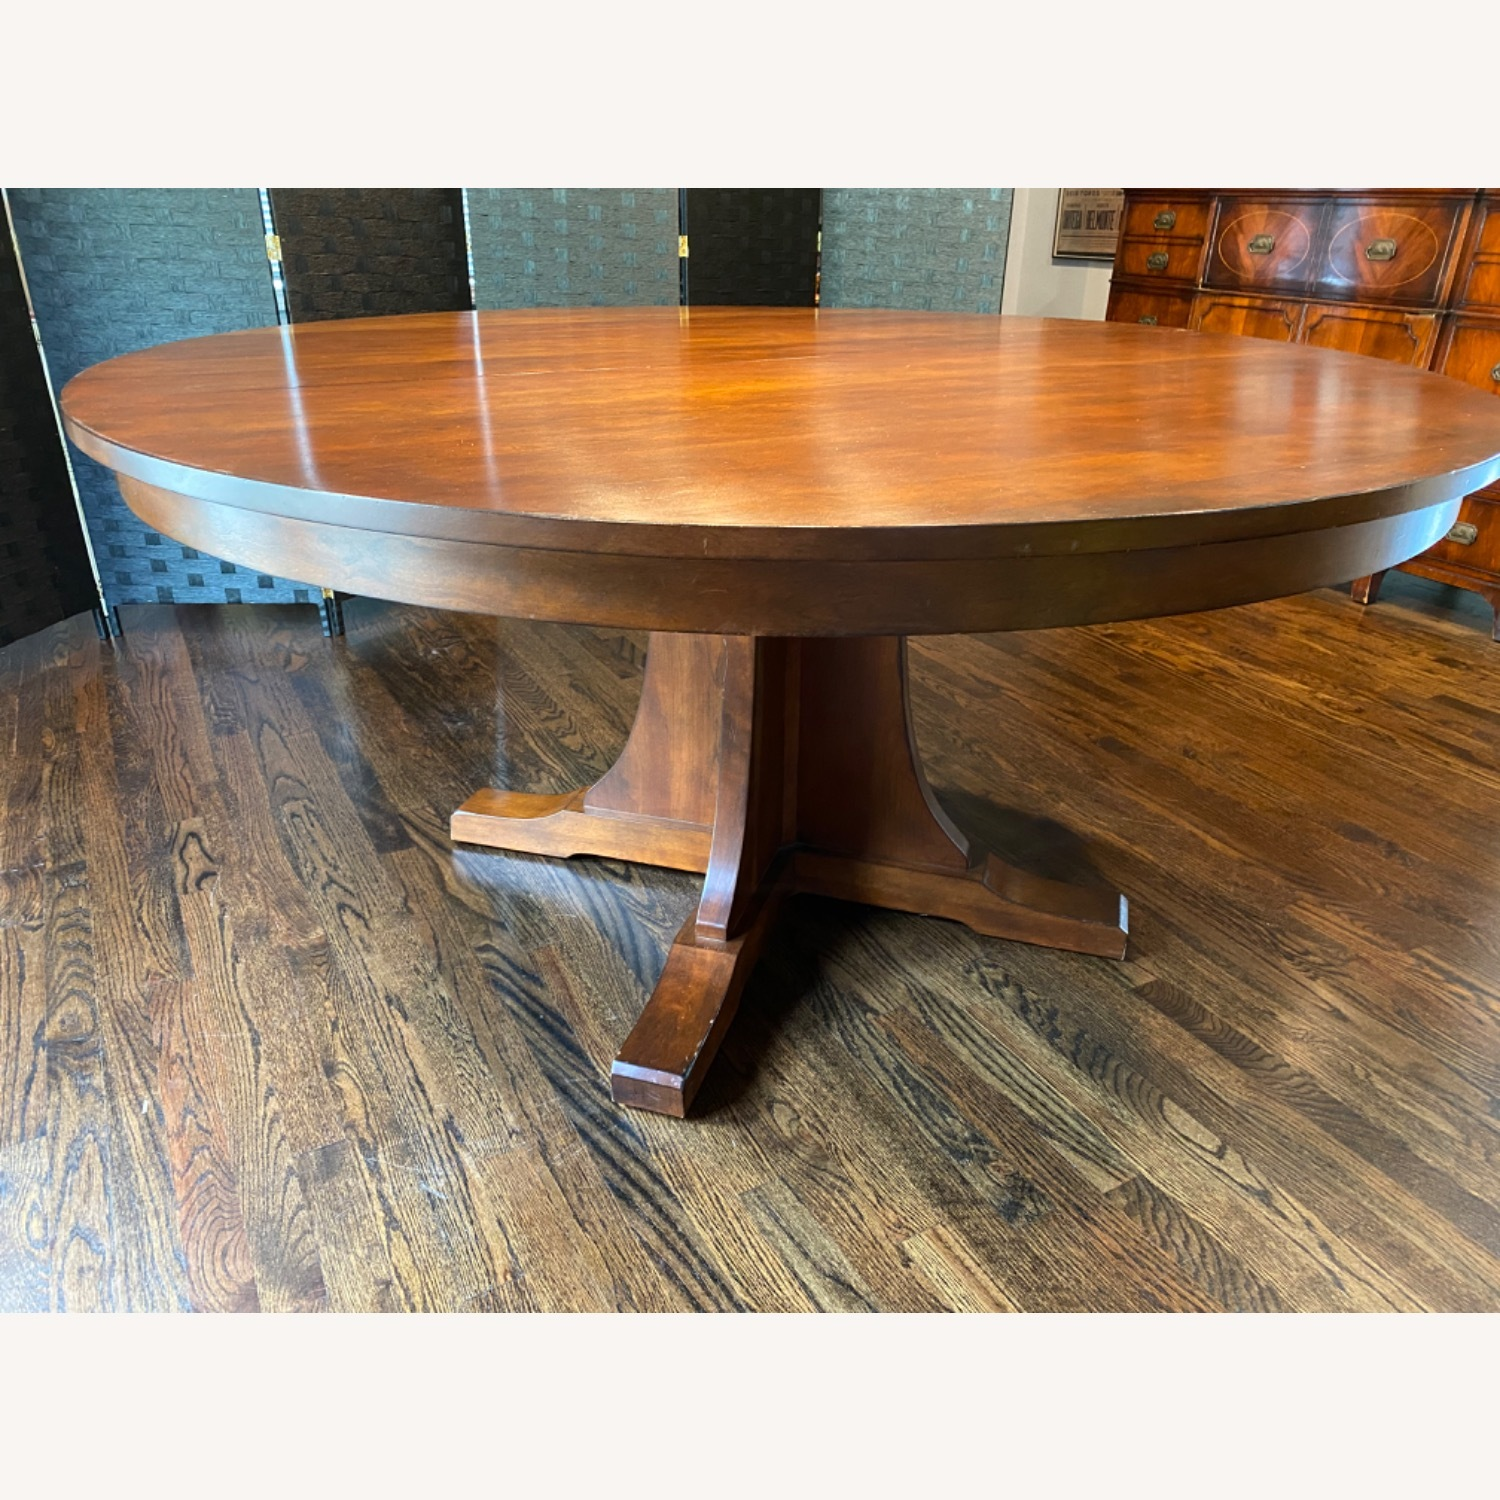 Stickley Round Dining Table with 3 Leaves - image-4